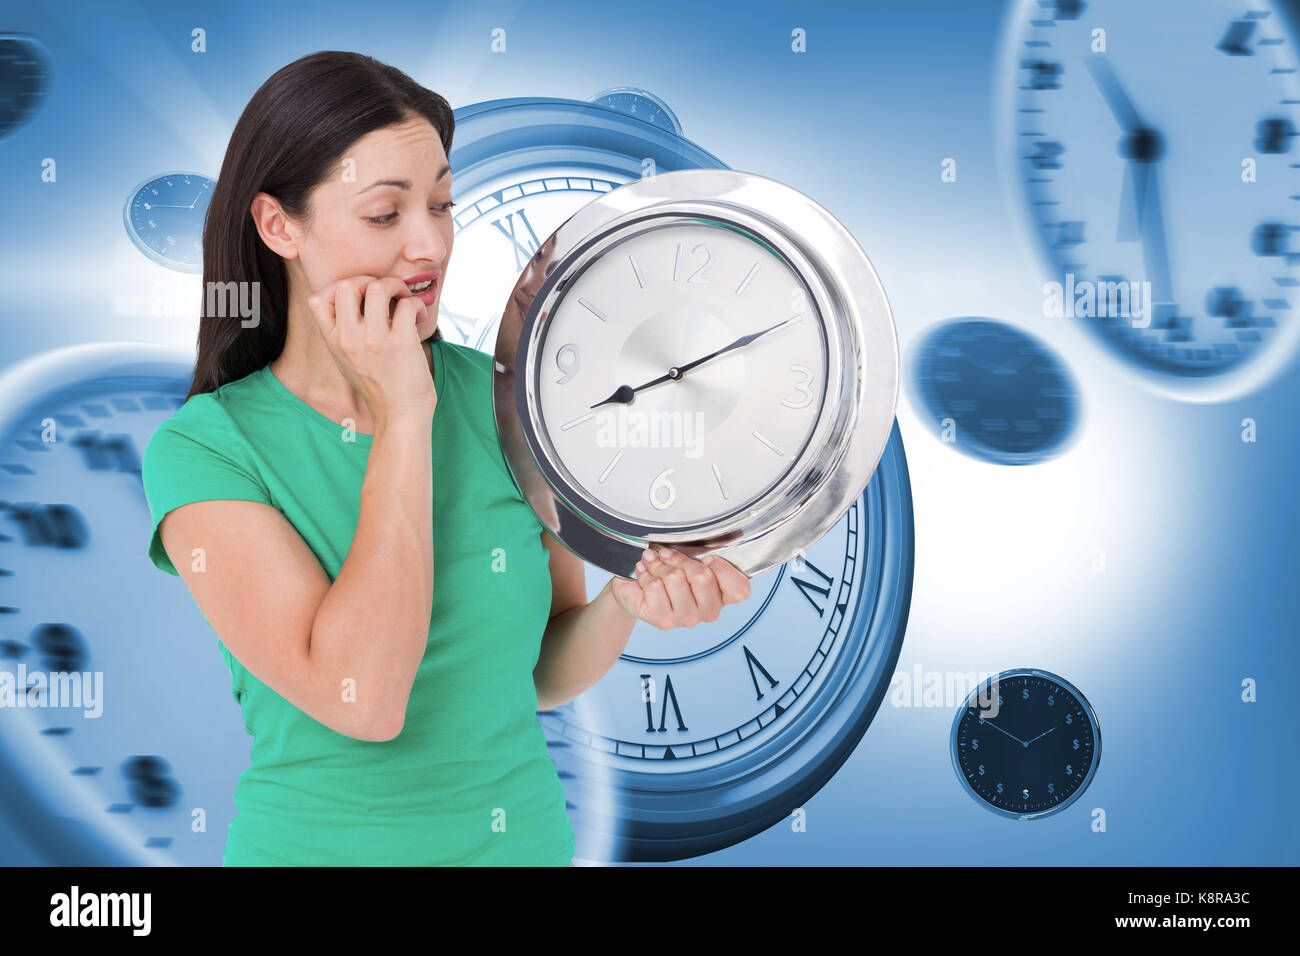 Brunette looking at wall clock against graphic image of wall clocks - Stock Image